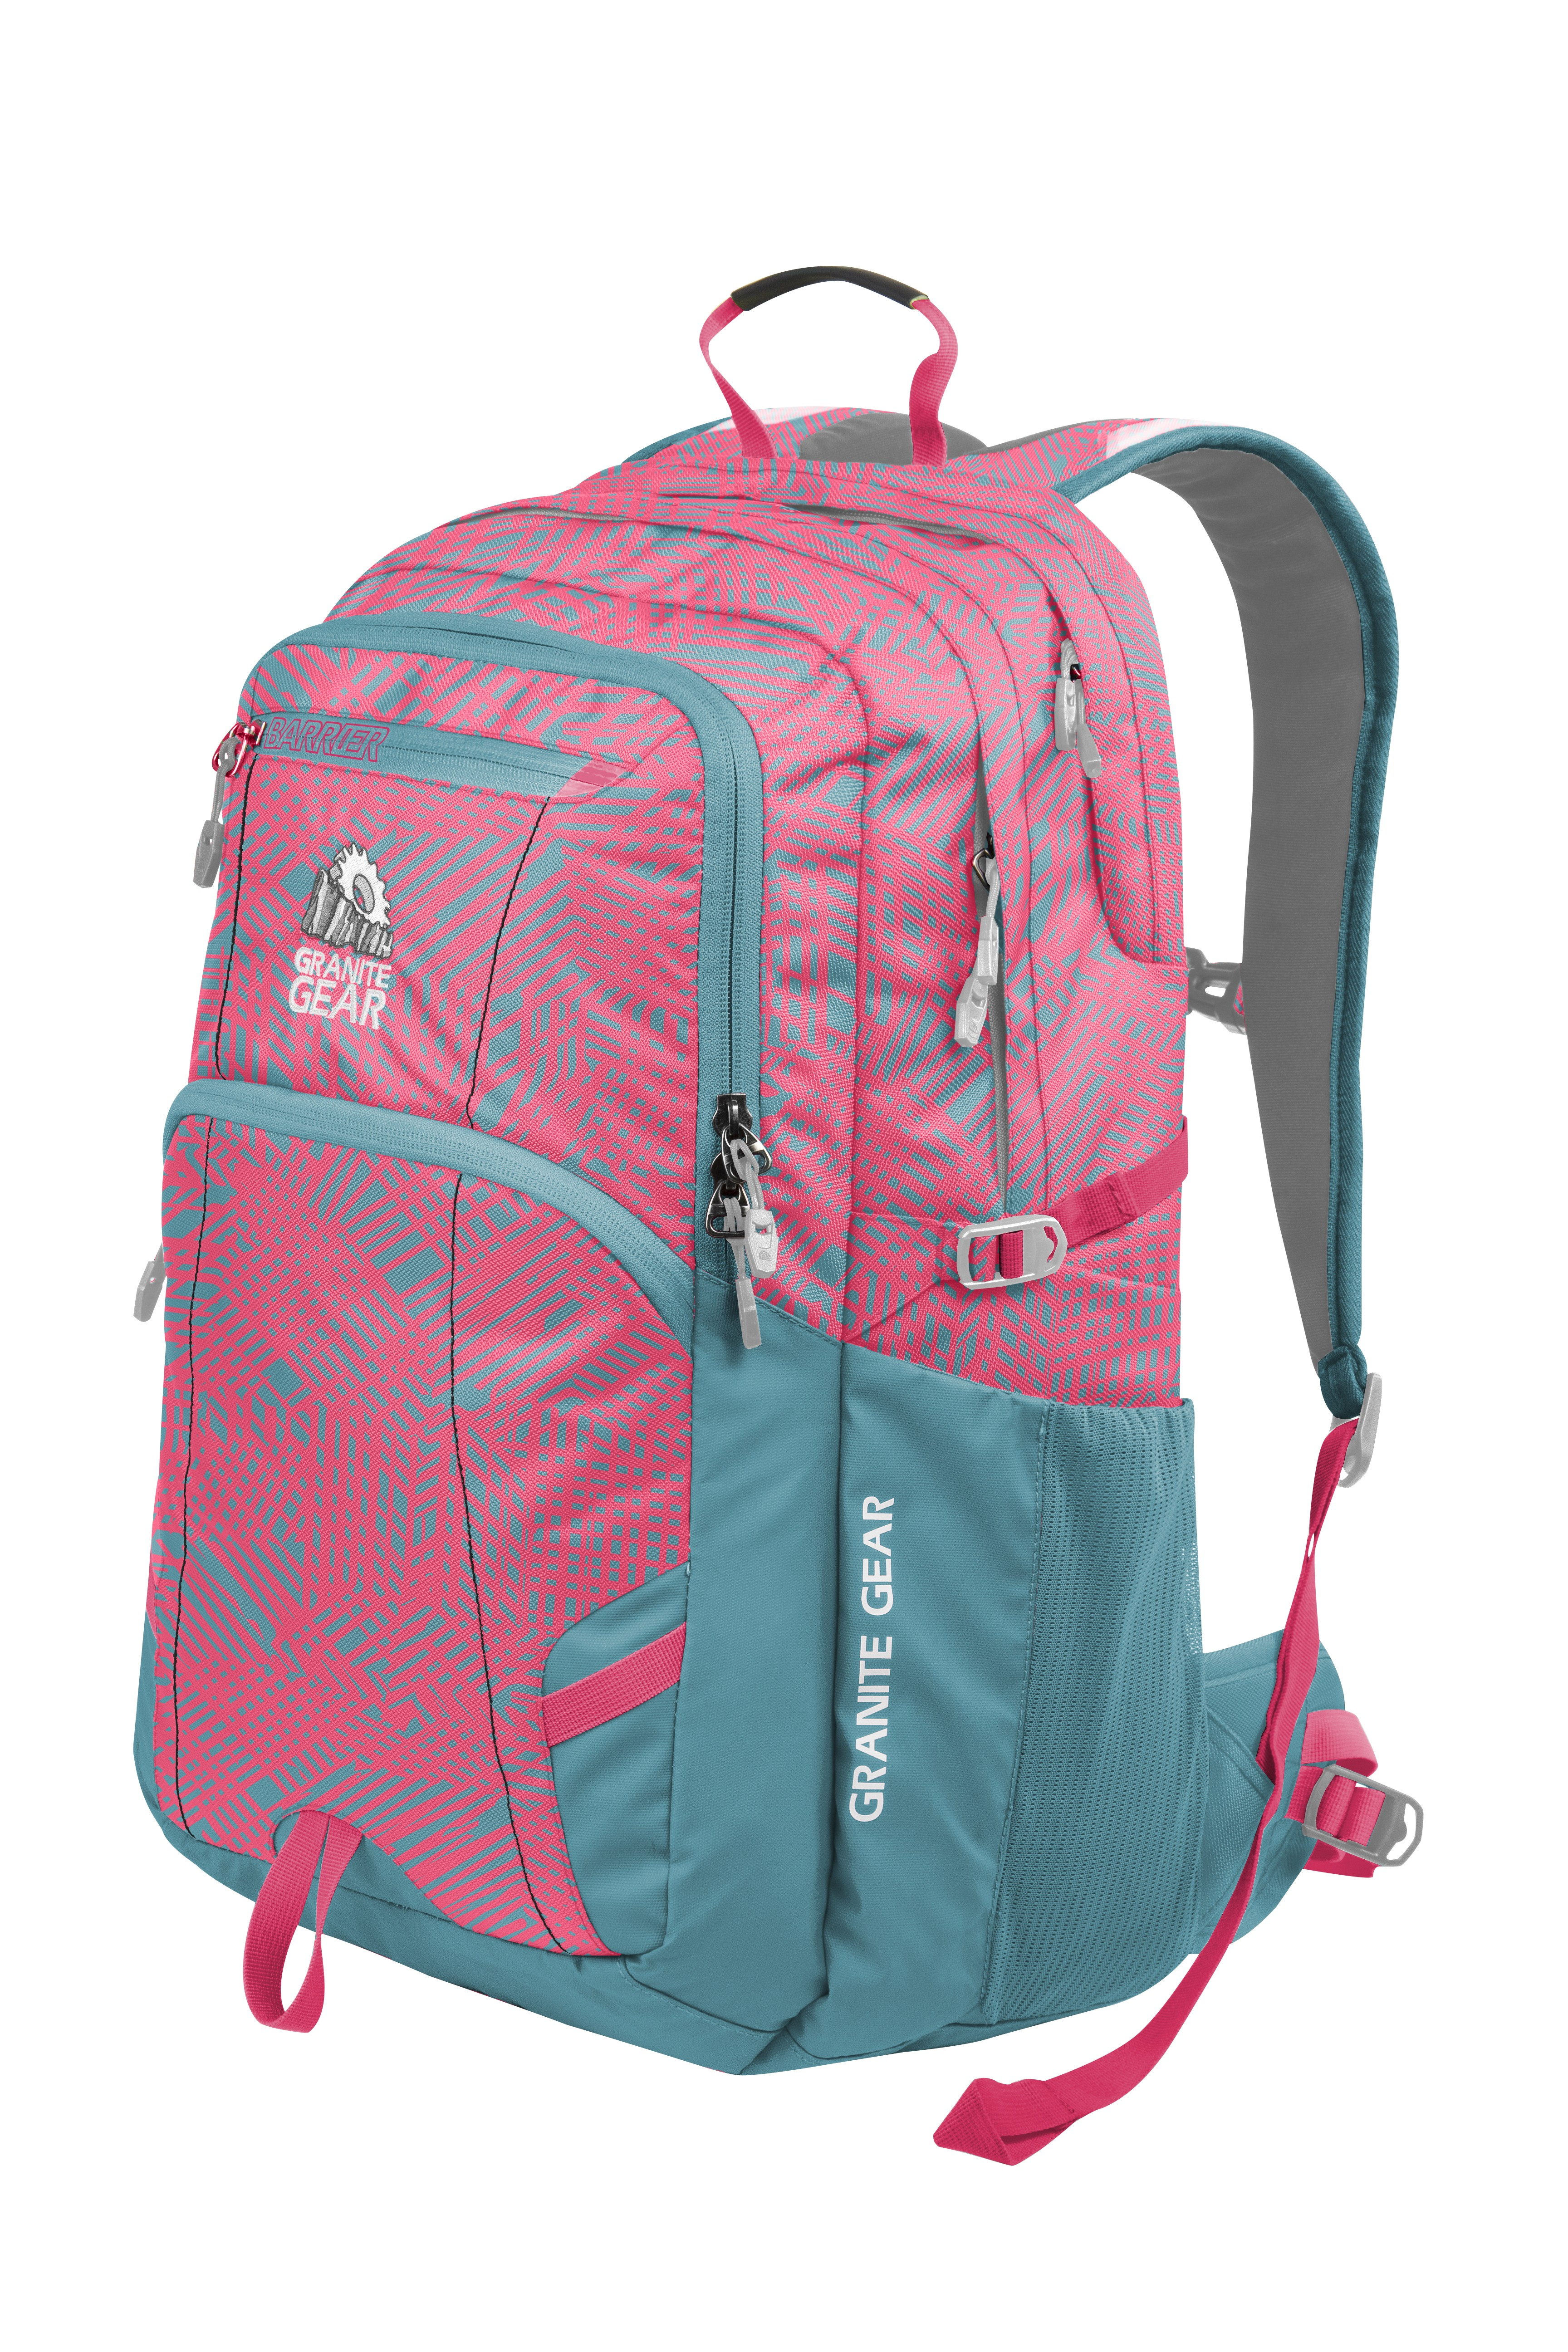 Sawtooth College Backpacks Granite Gear